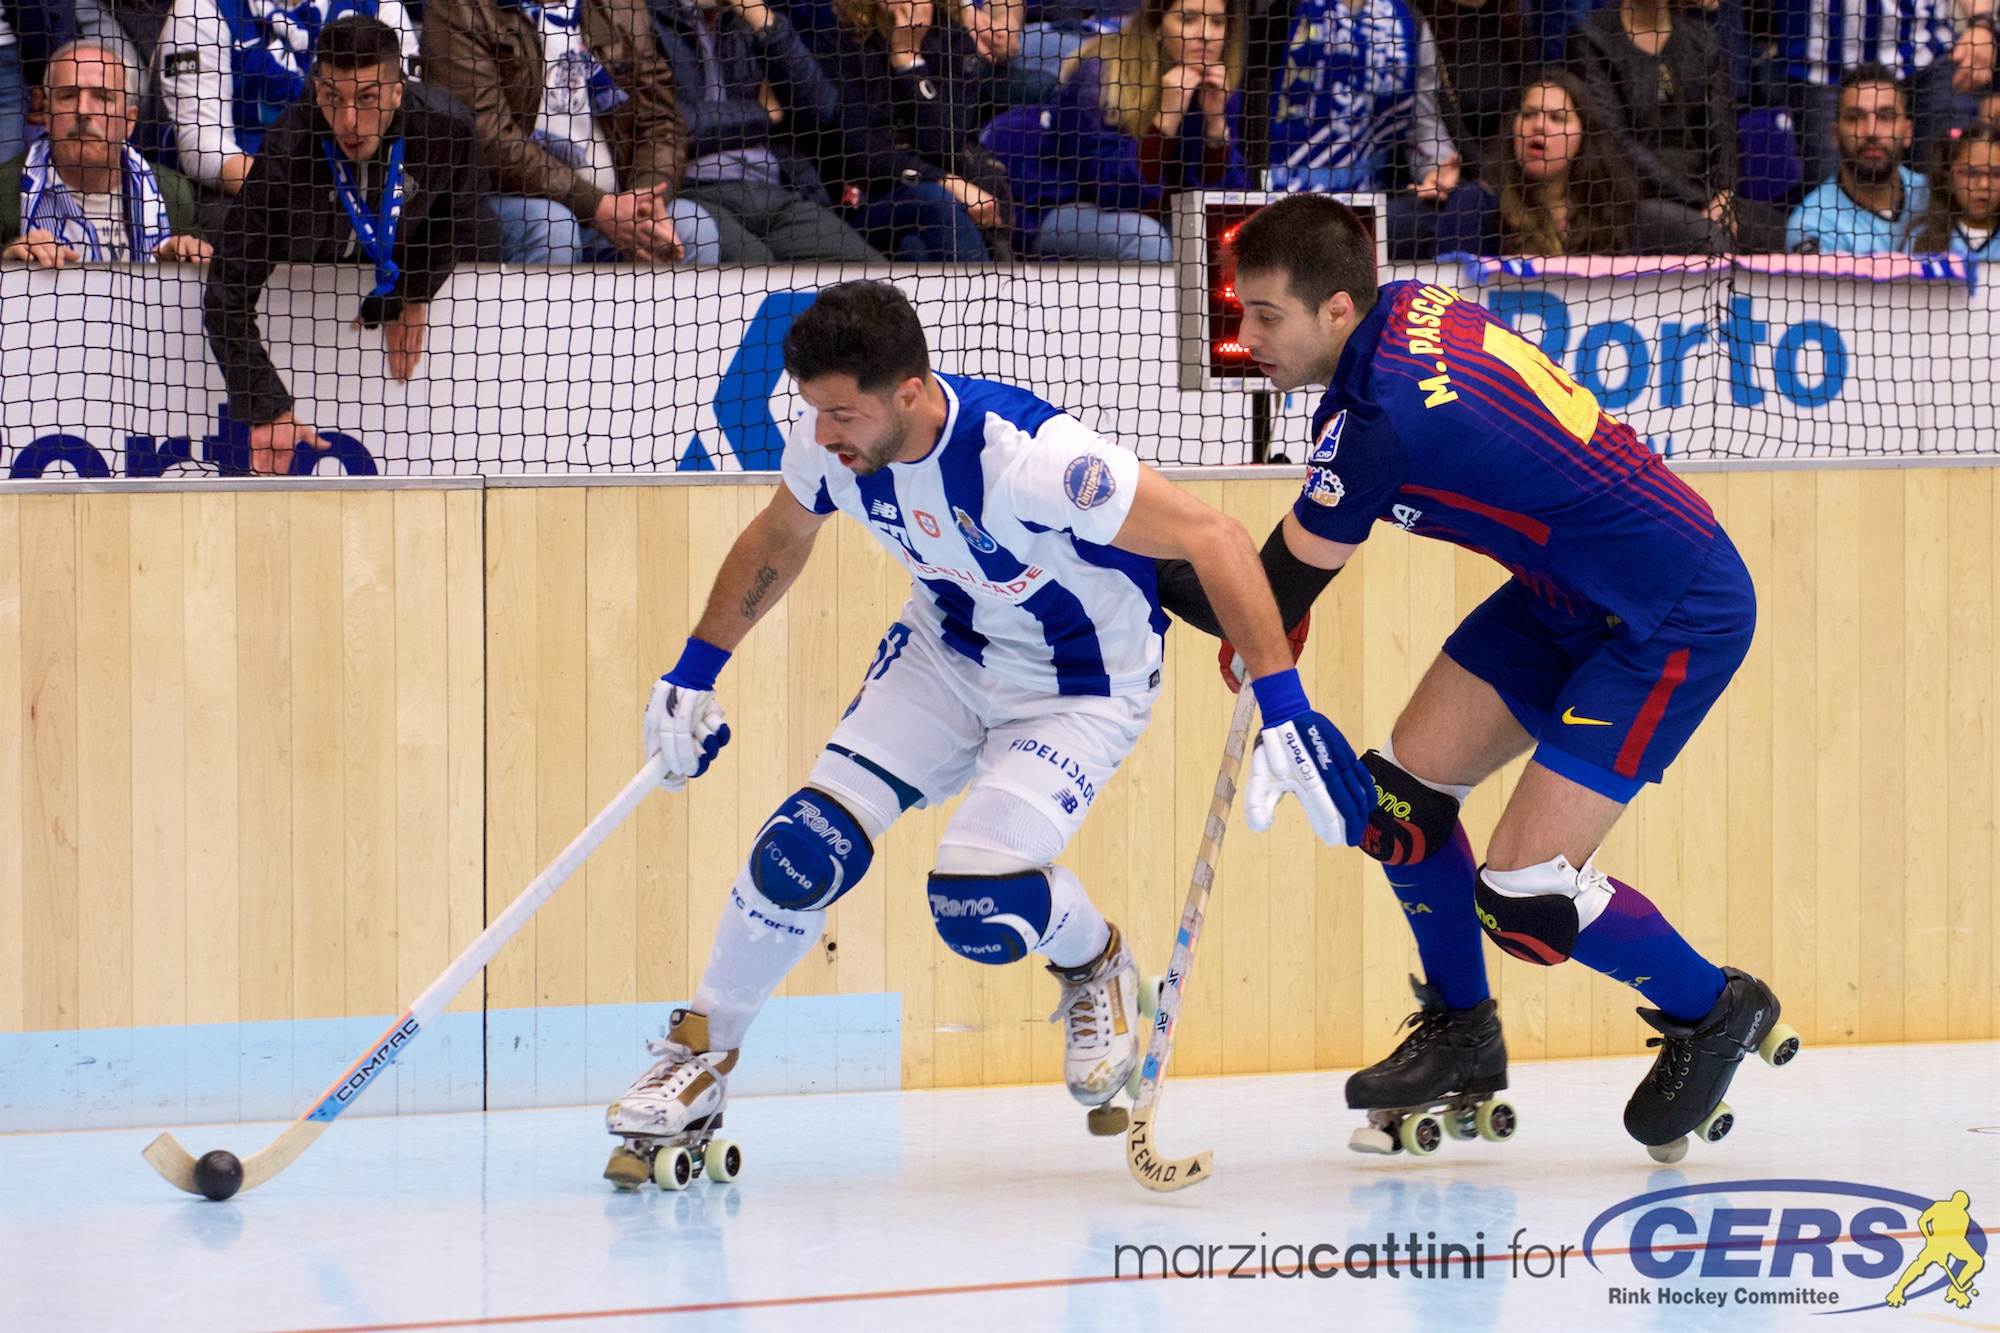 PHOTOS – 13/05/2018 – EUROLEAGUE – Match #62 - Final - FC Barcelona (SP) x FC Porto (PT) – Photos by Marzia Cattini